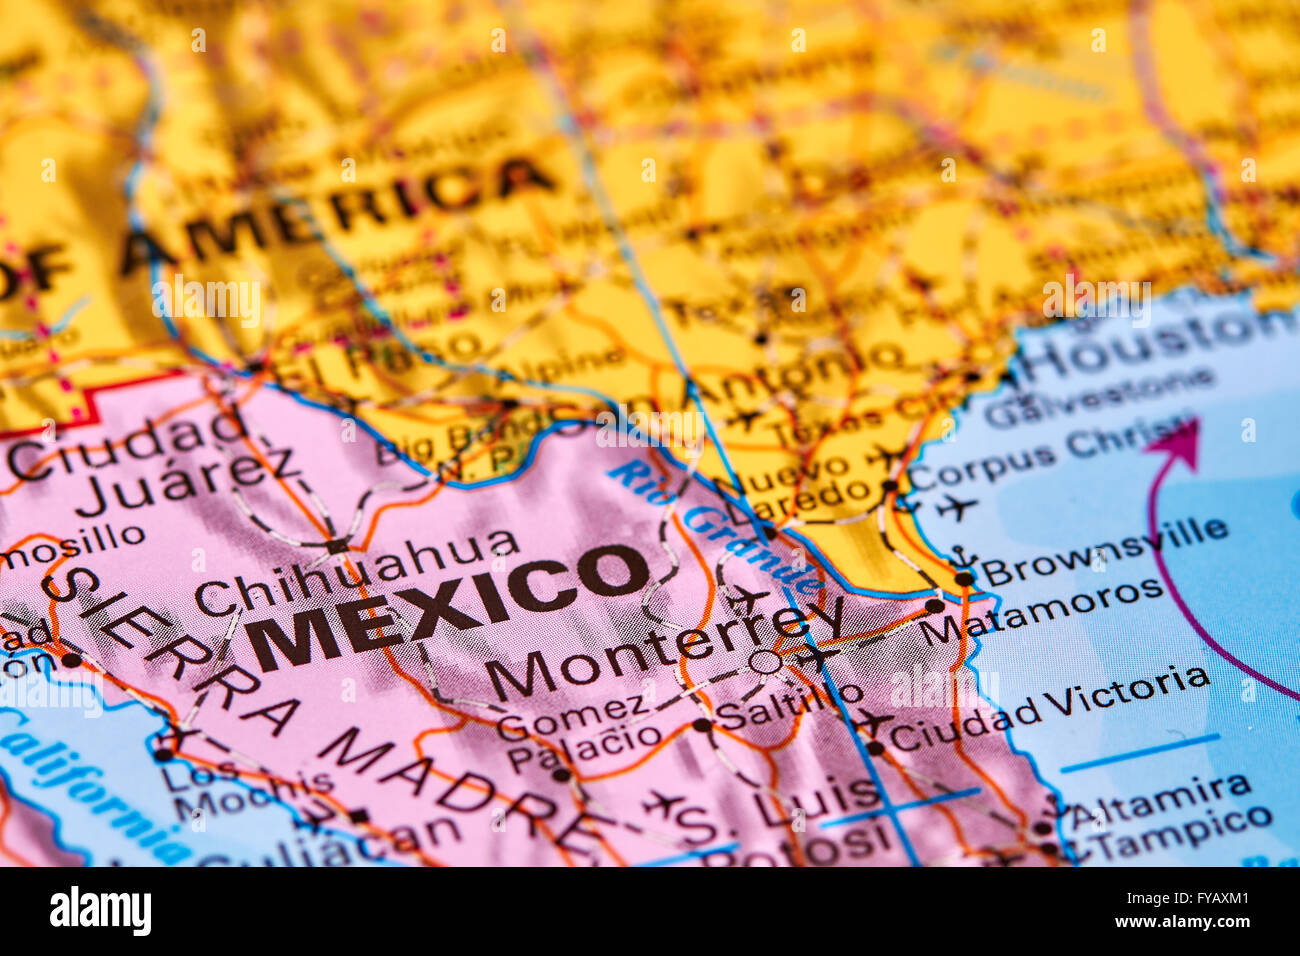 Altamira Mexico Map.Mexico Country In Central America On The World Map Stock Photo